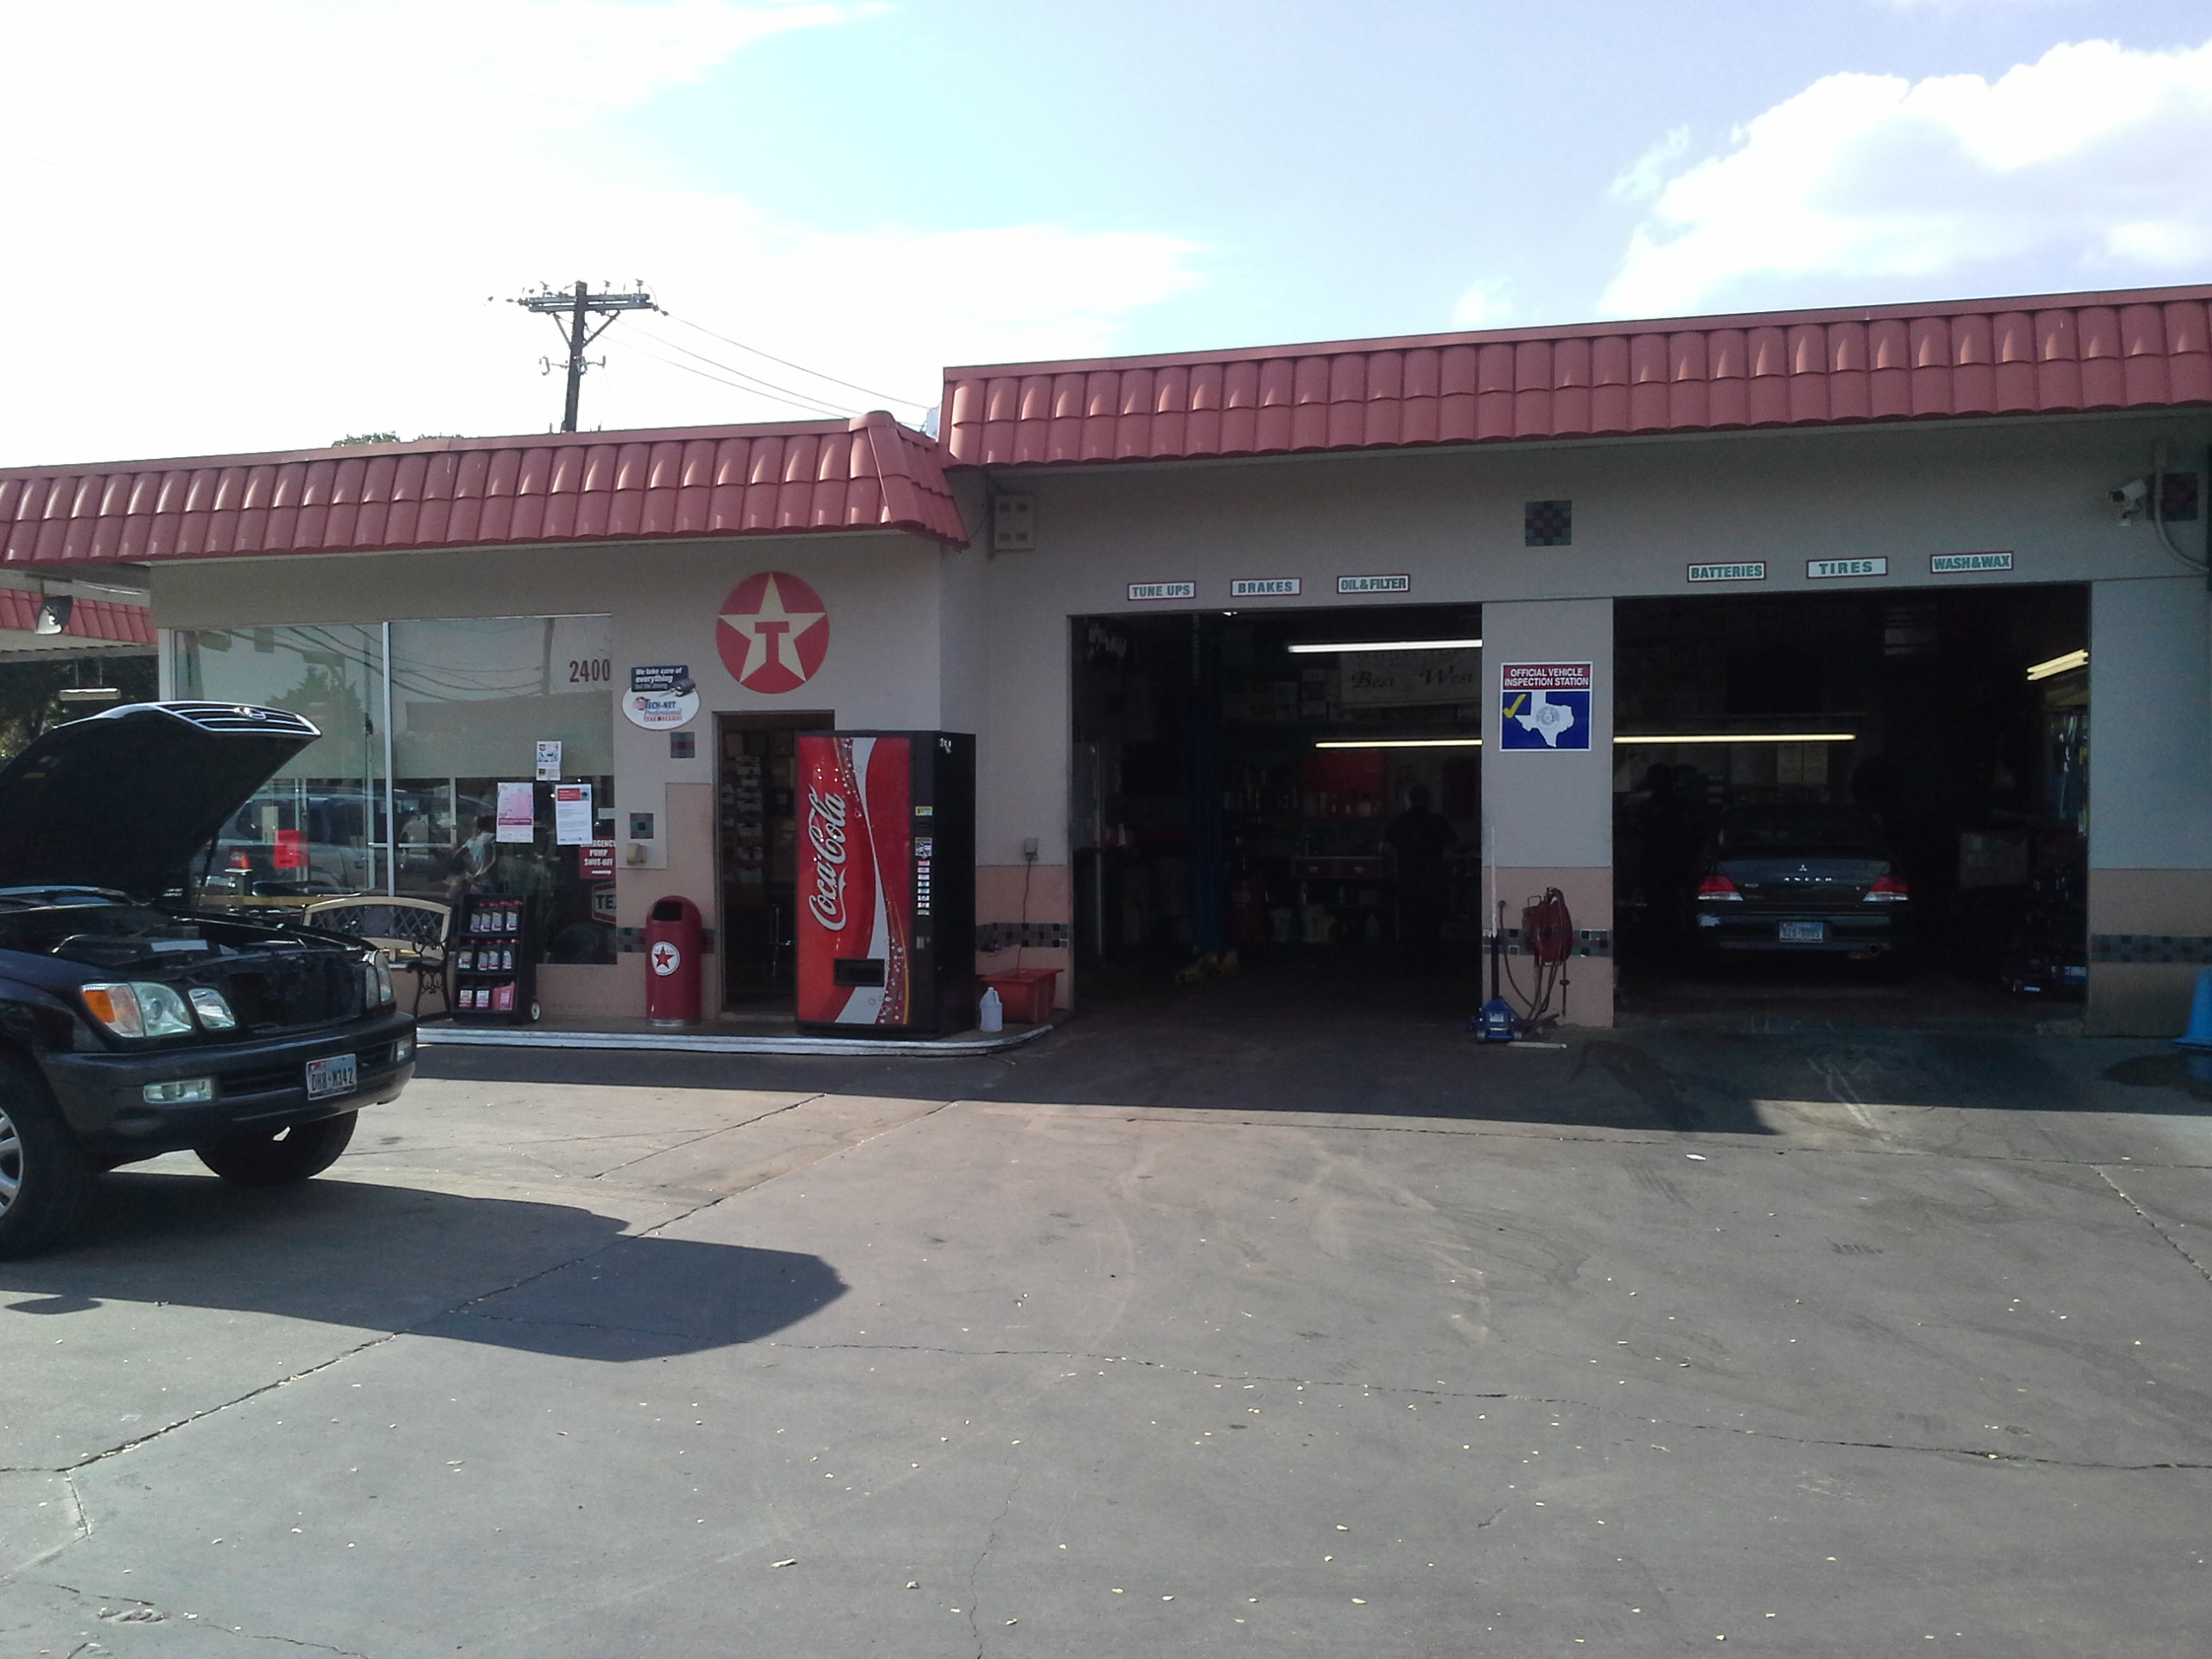 Tarrytown Texaco image 4